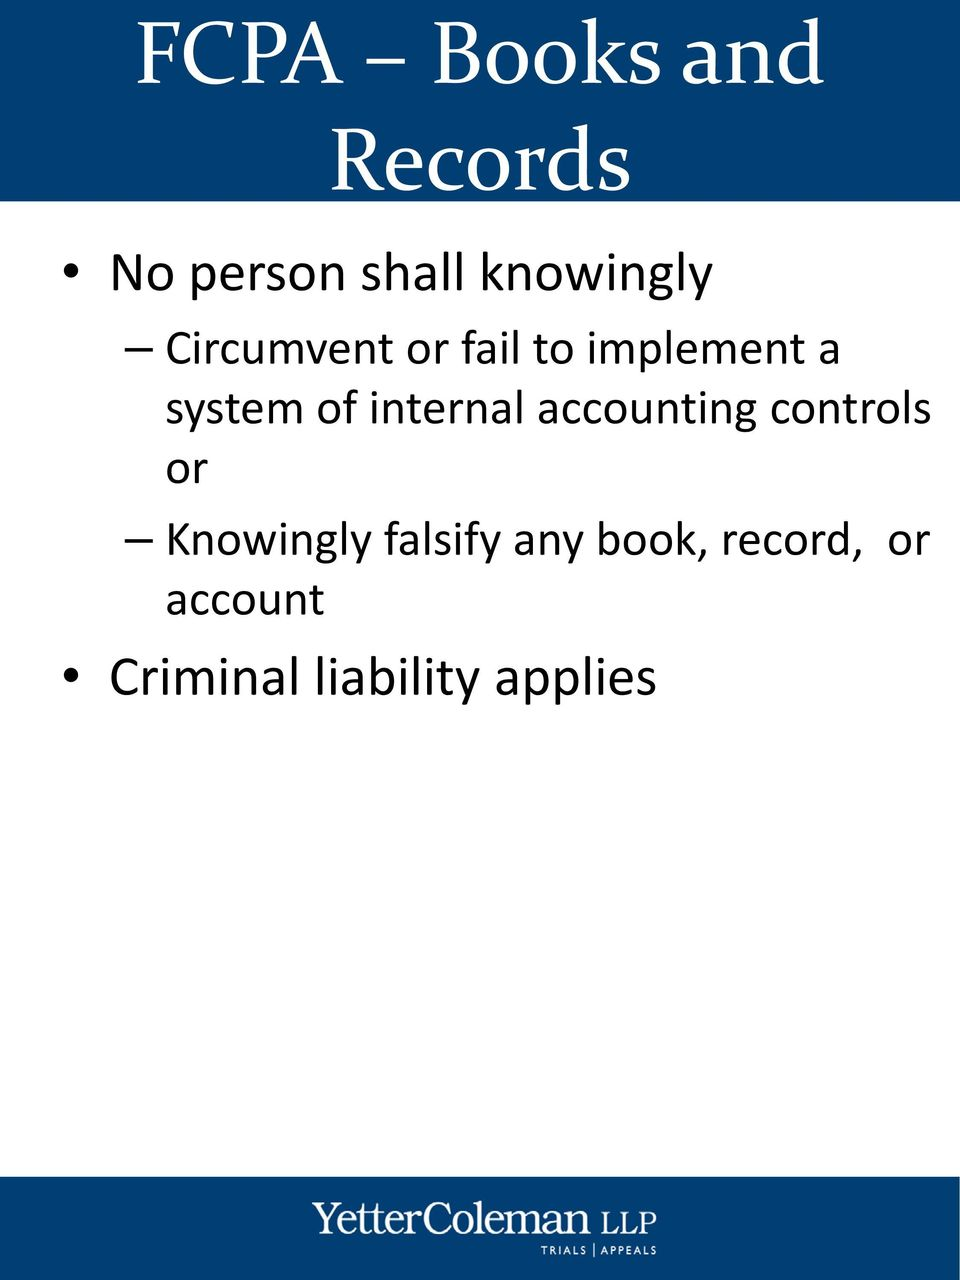 internal accounting controls or Knowingly falsify